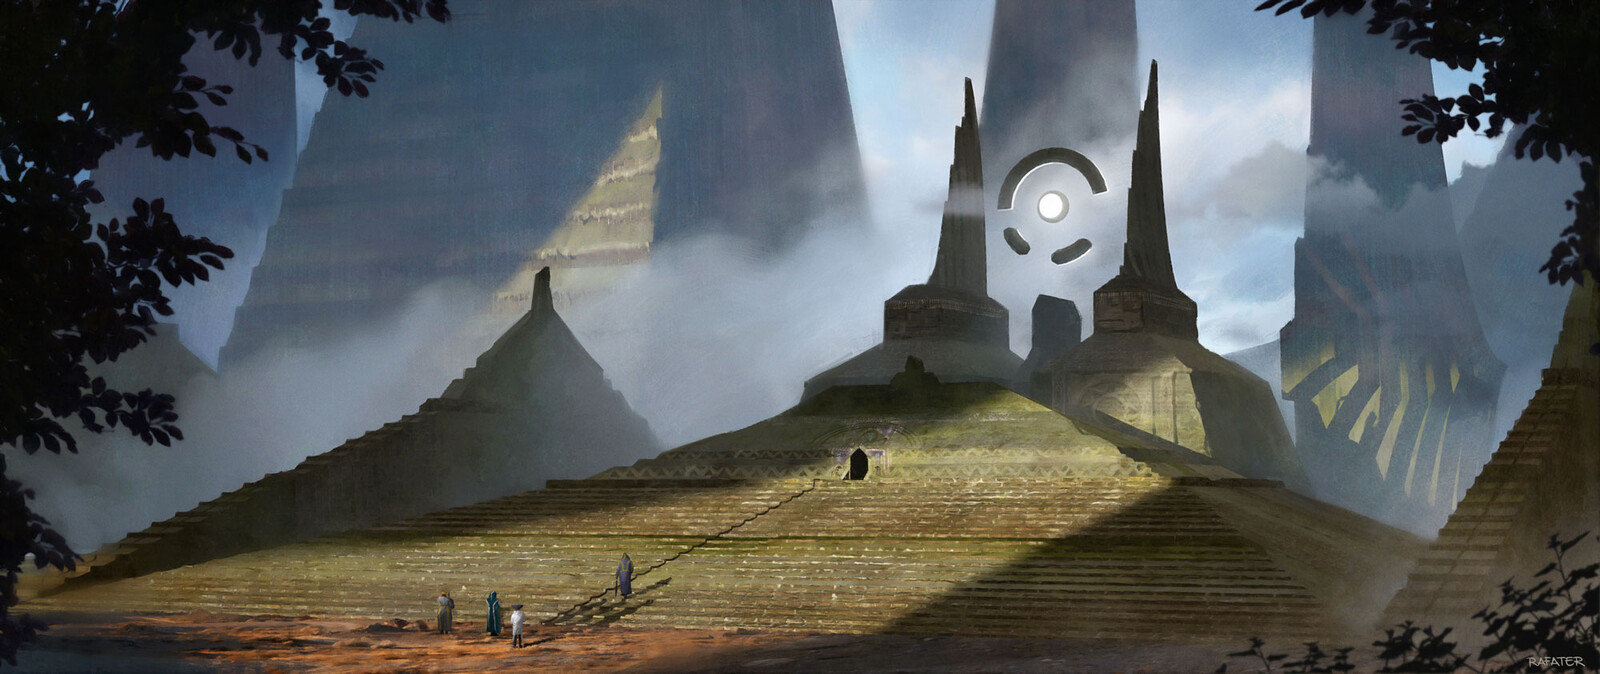 Ancient temple by Rafater